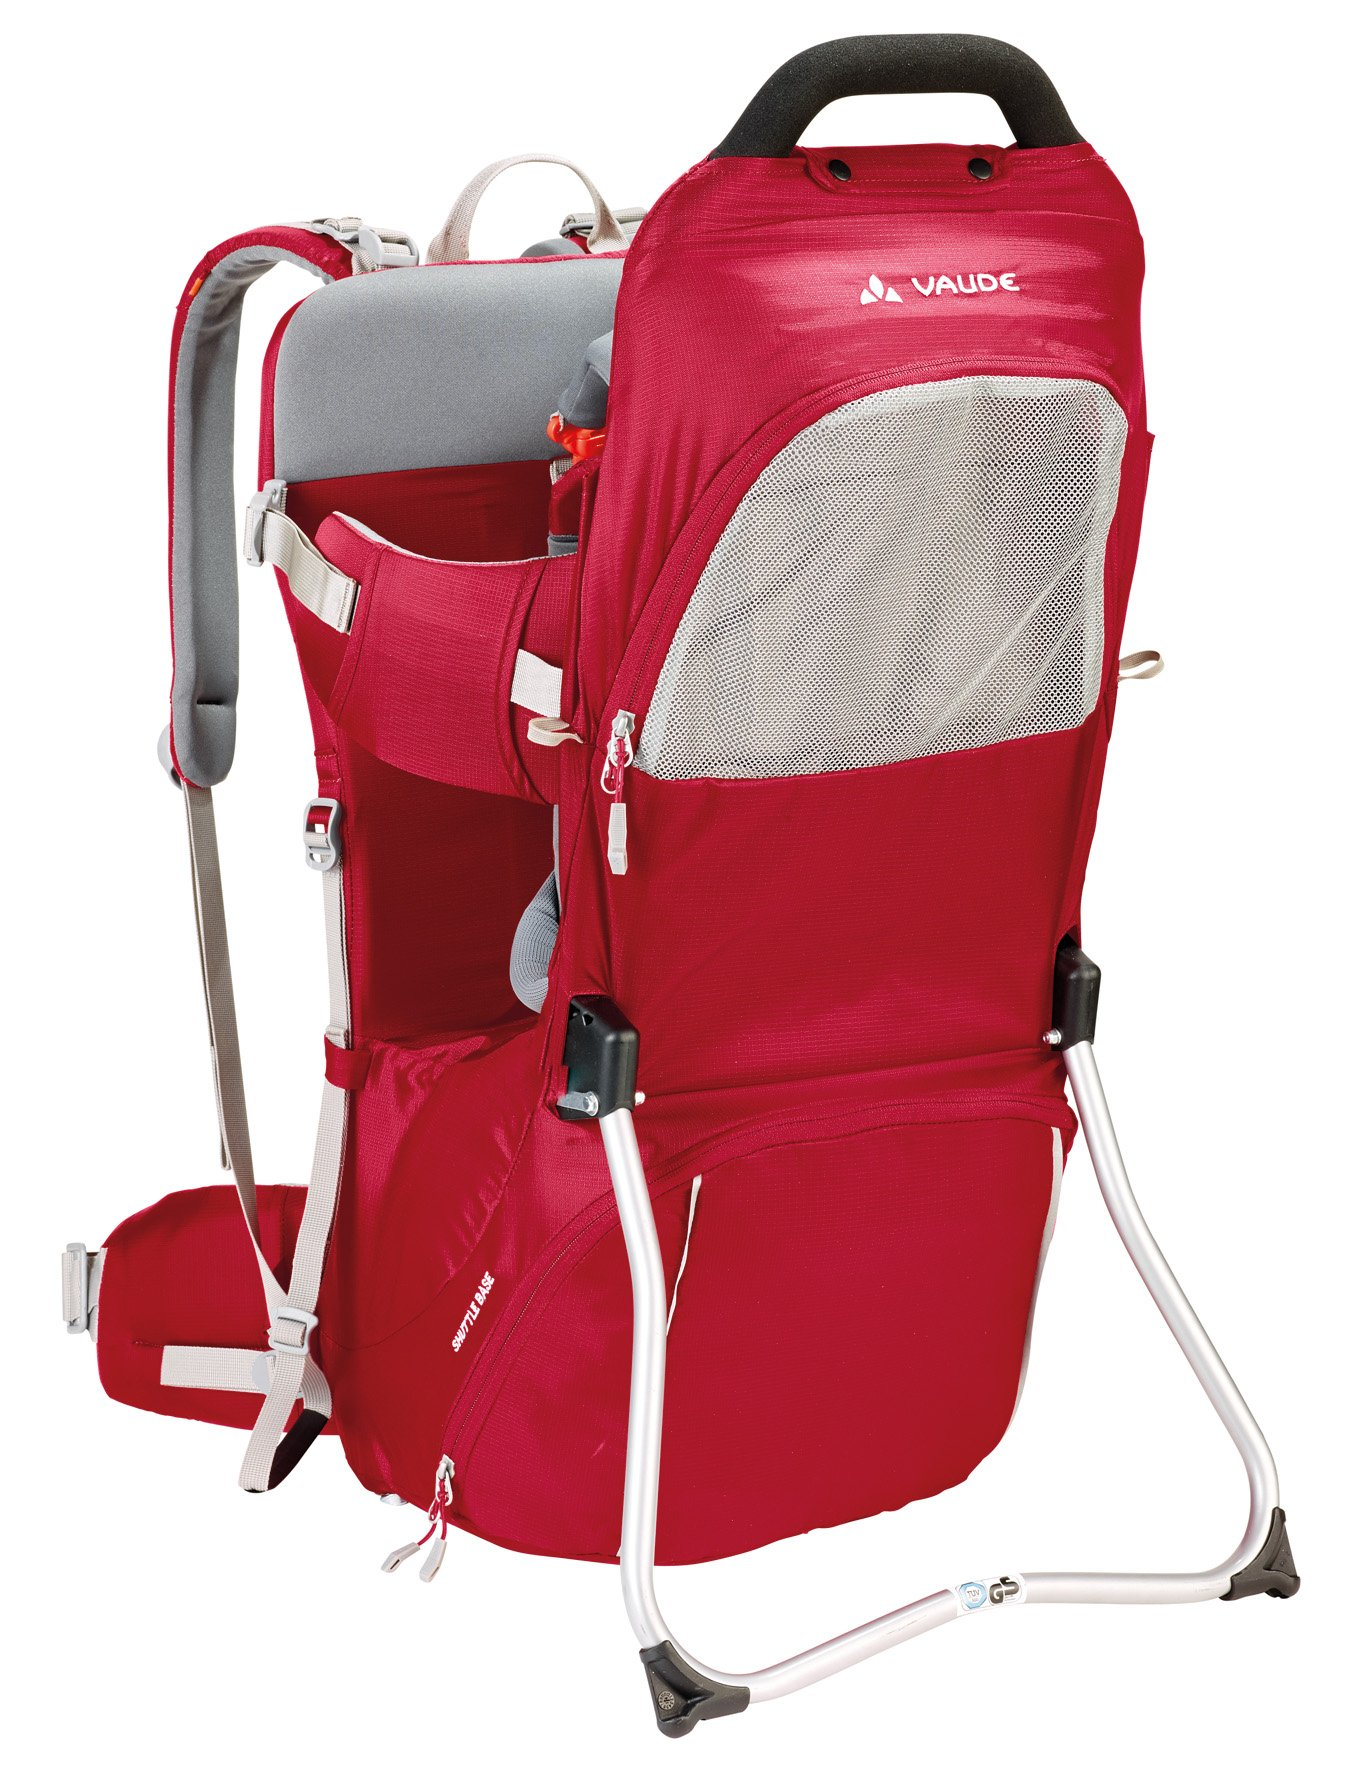 Vaude Shuttle Base Child Carrier Vaude Individually adjustable supportive back Padded hip belt with pocket. The Shuttle Base can safely carry children up to 105 cm or 18 kg Adjustable seat height. Maximum age: 3 years 1